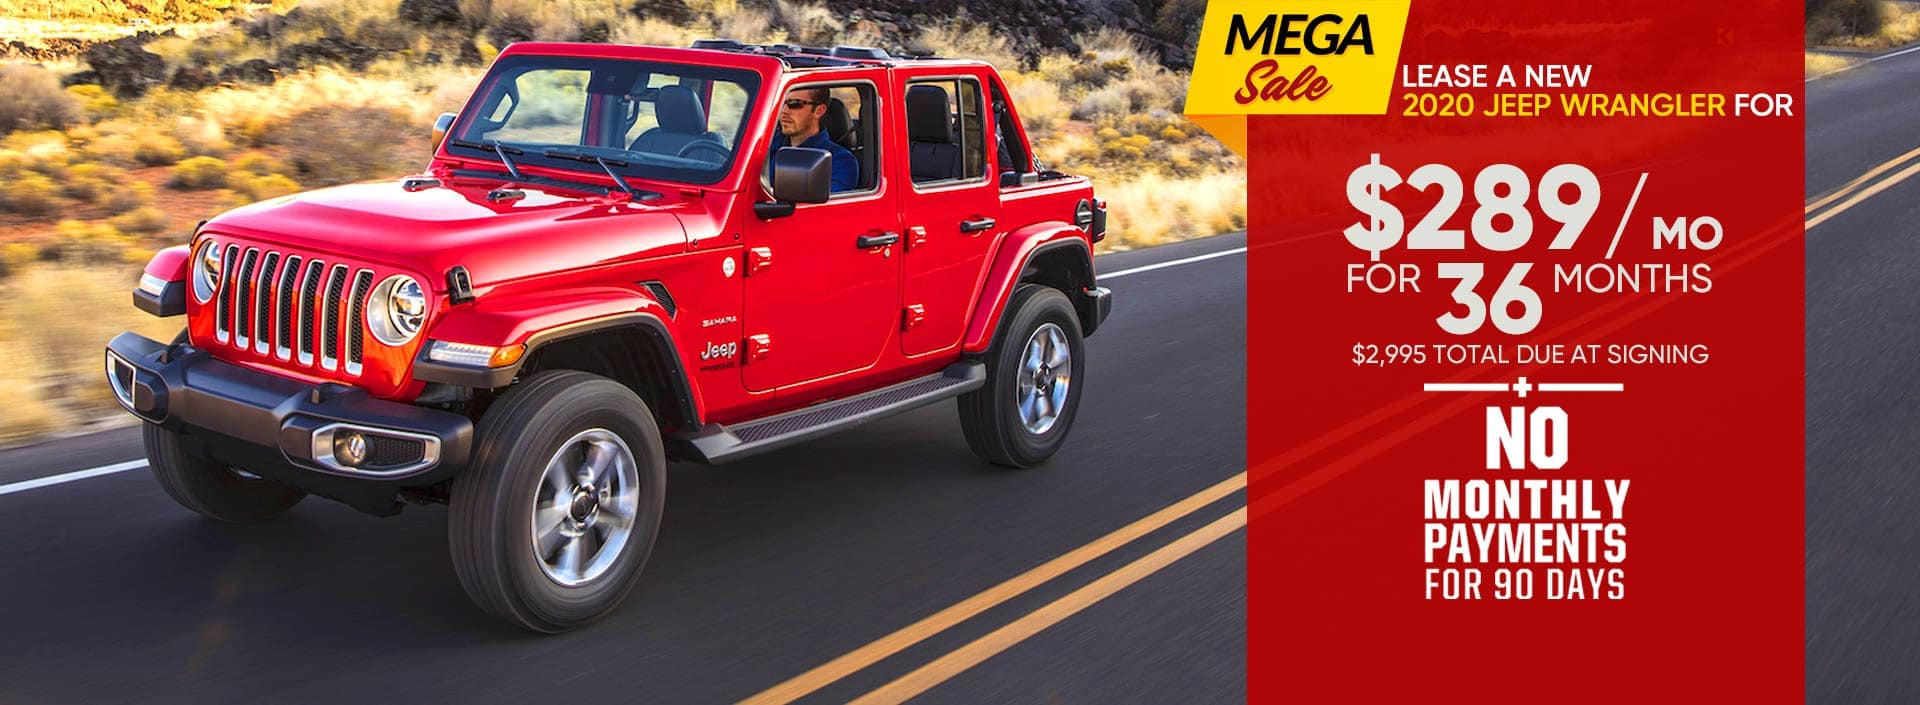 Jeep Wrangler Sale